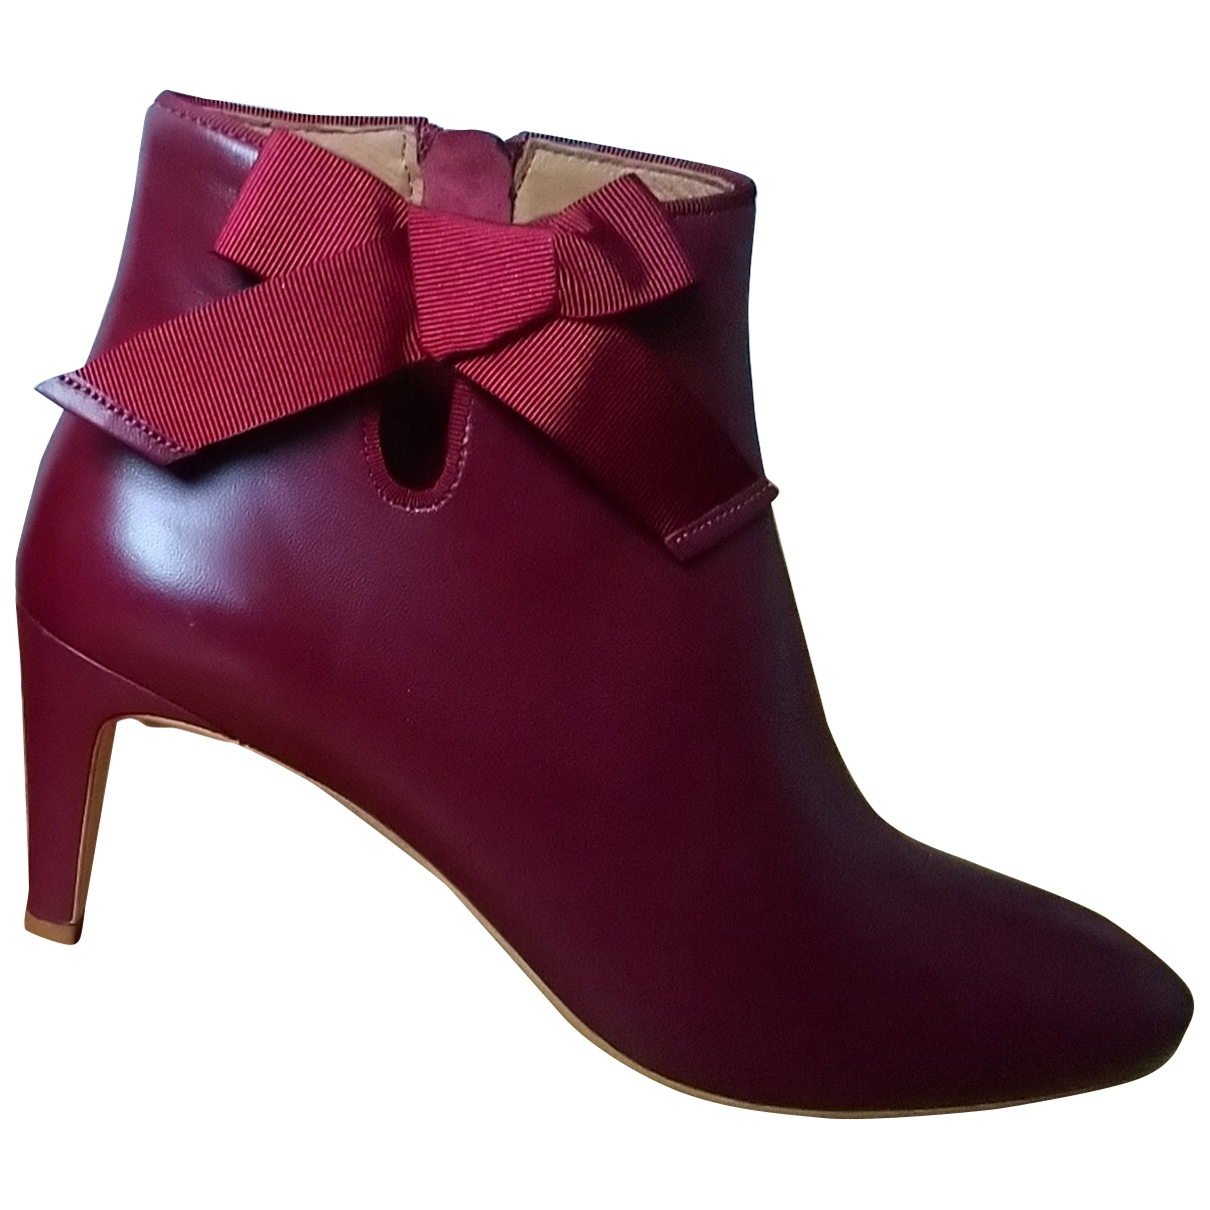 Petite Mendigote \N Burgundy Leather Ankle boots for Women 34 EU